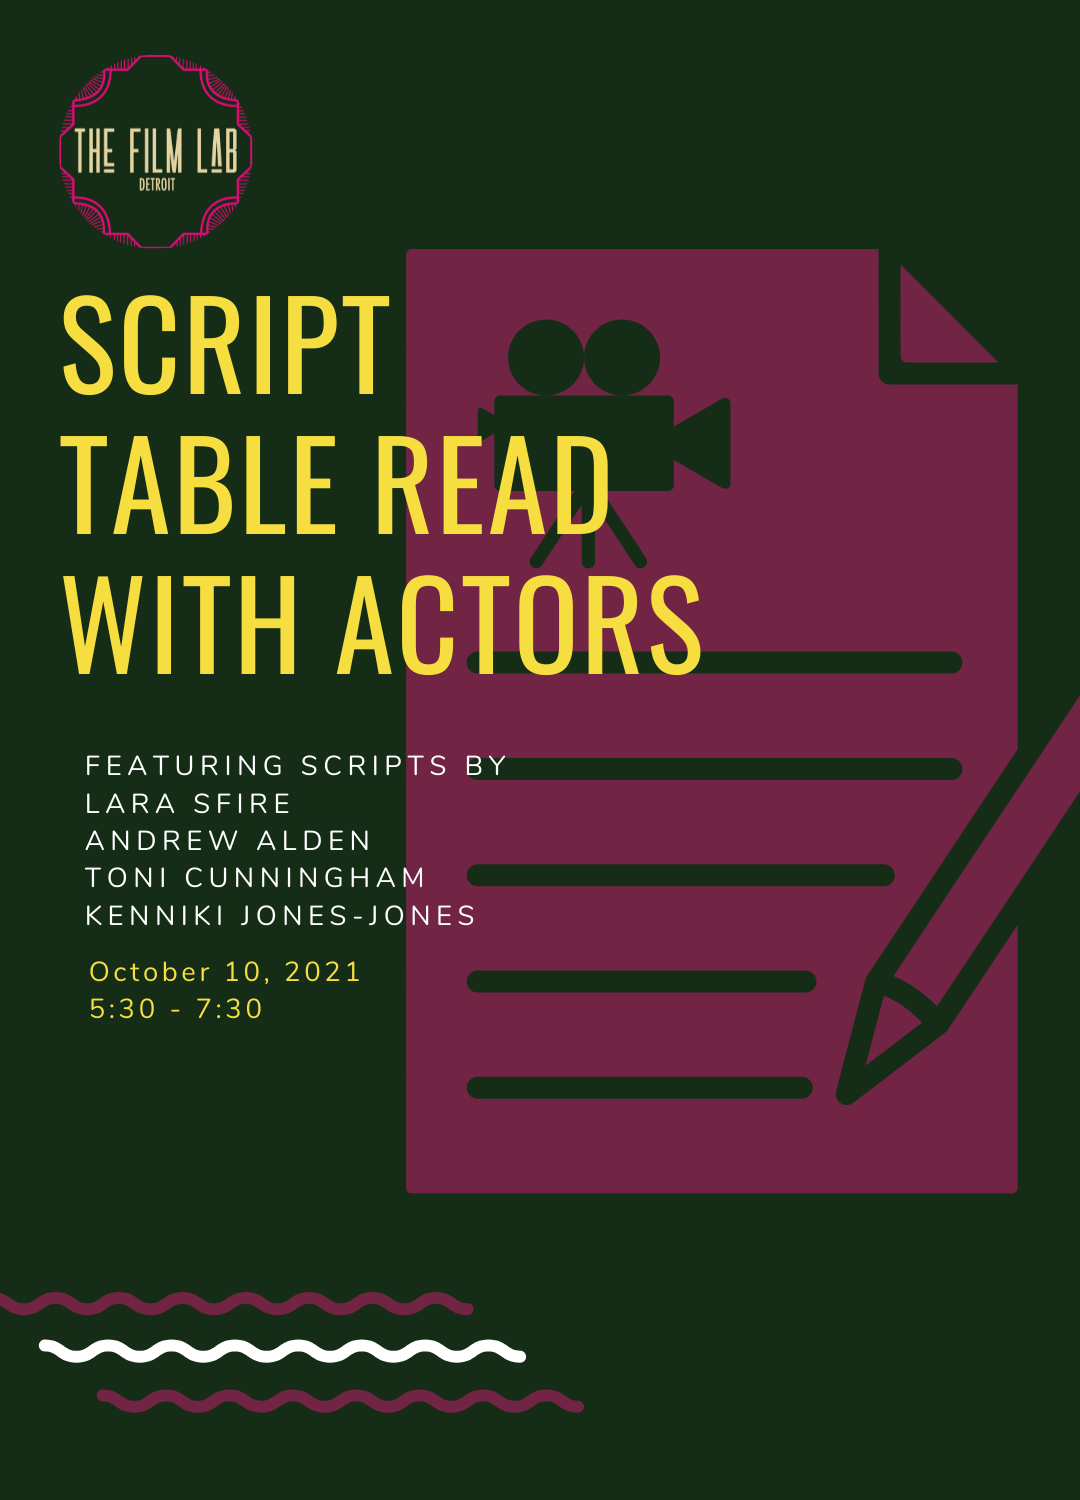 Poster for Script Table Read with Actors